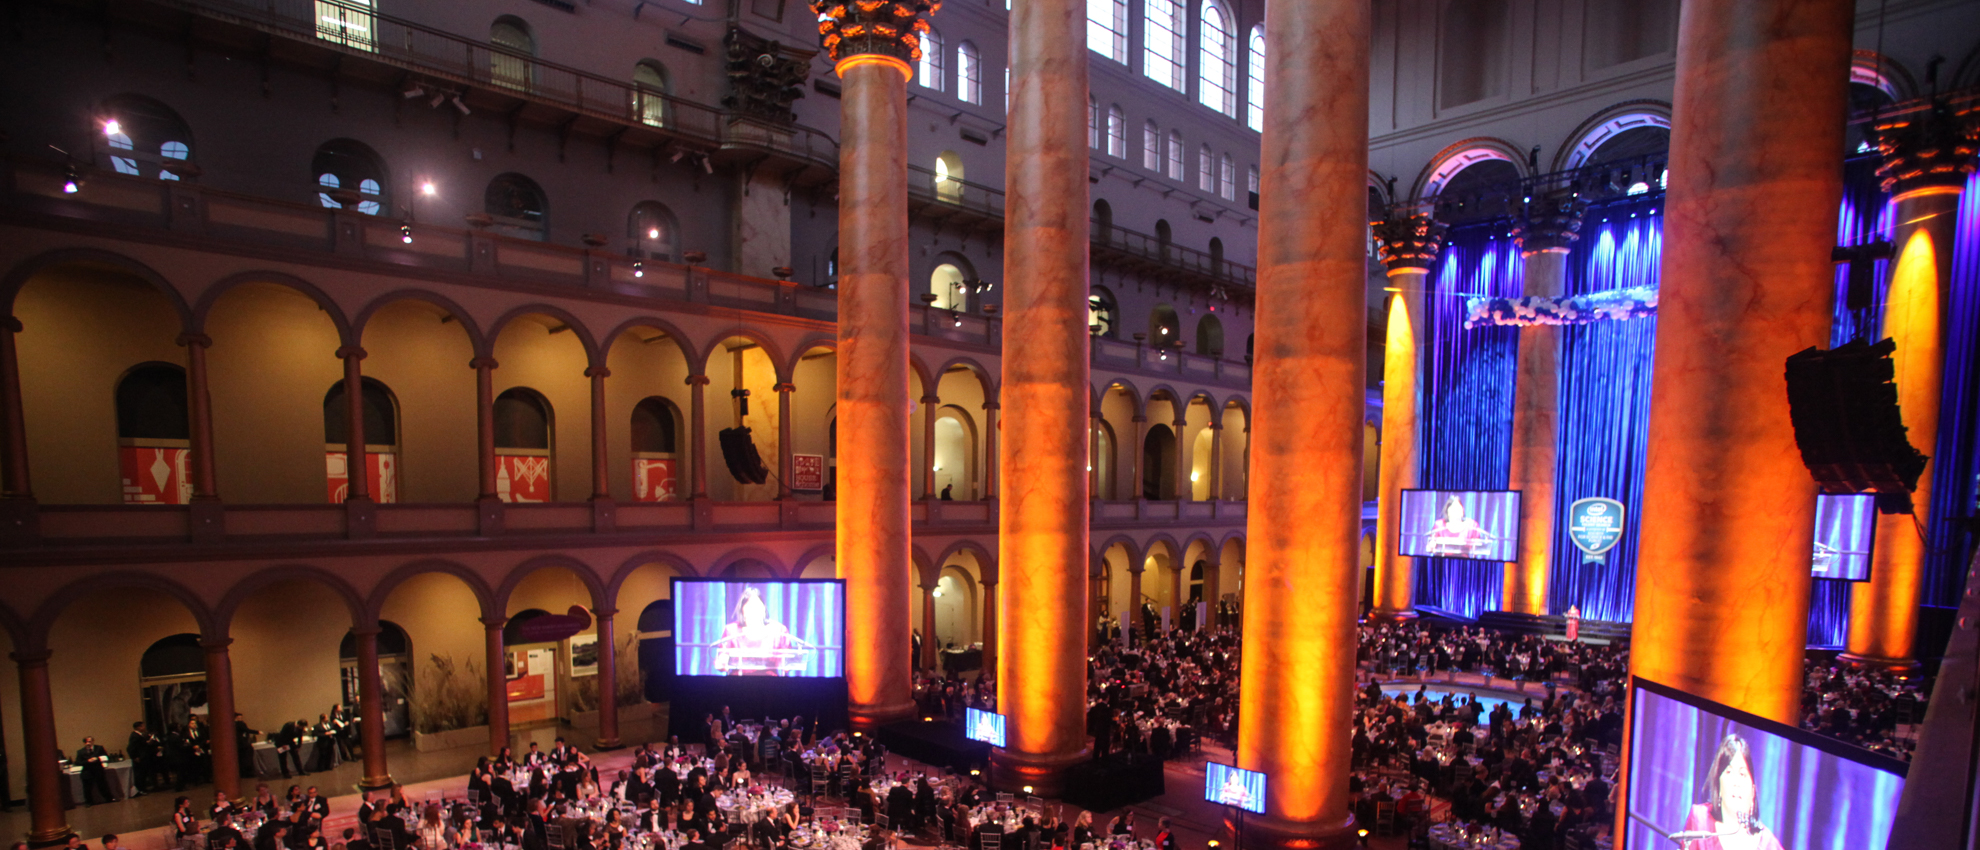 The top 10 Regeneron Science Talent Search 2019 winners will be announced at a black-tie gala awards ceremony at the National Building Museum in Washington, D.C